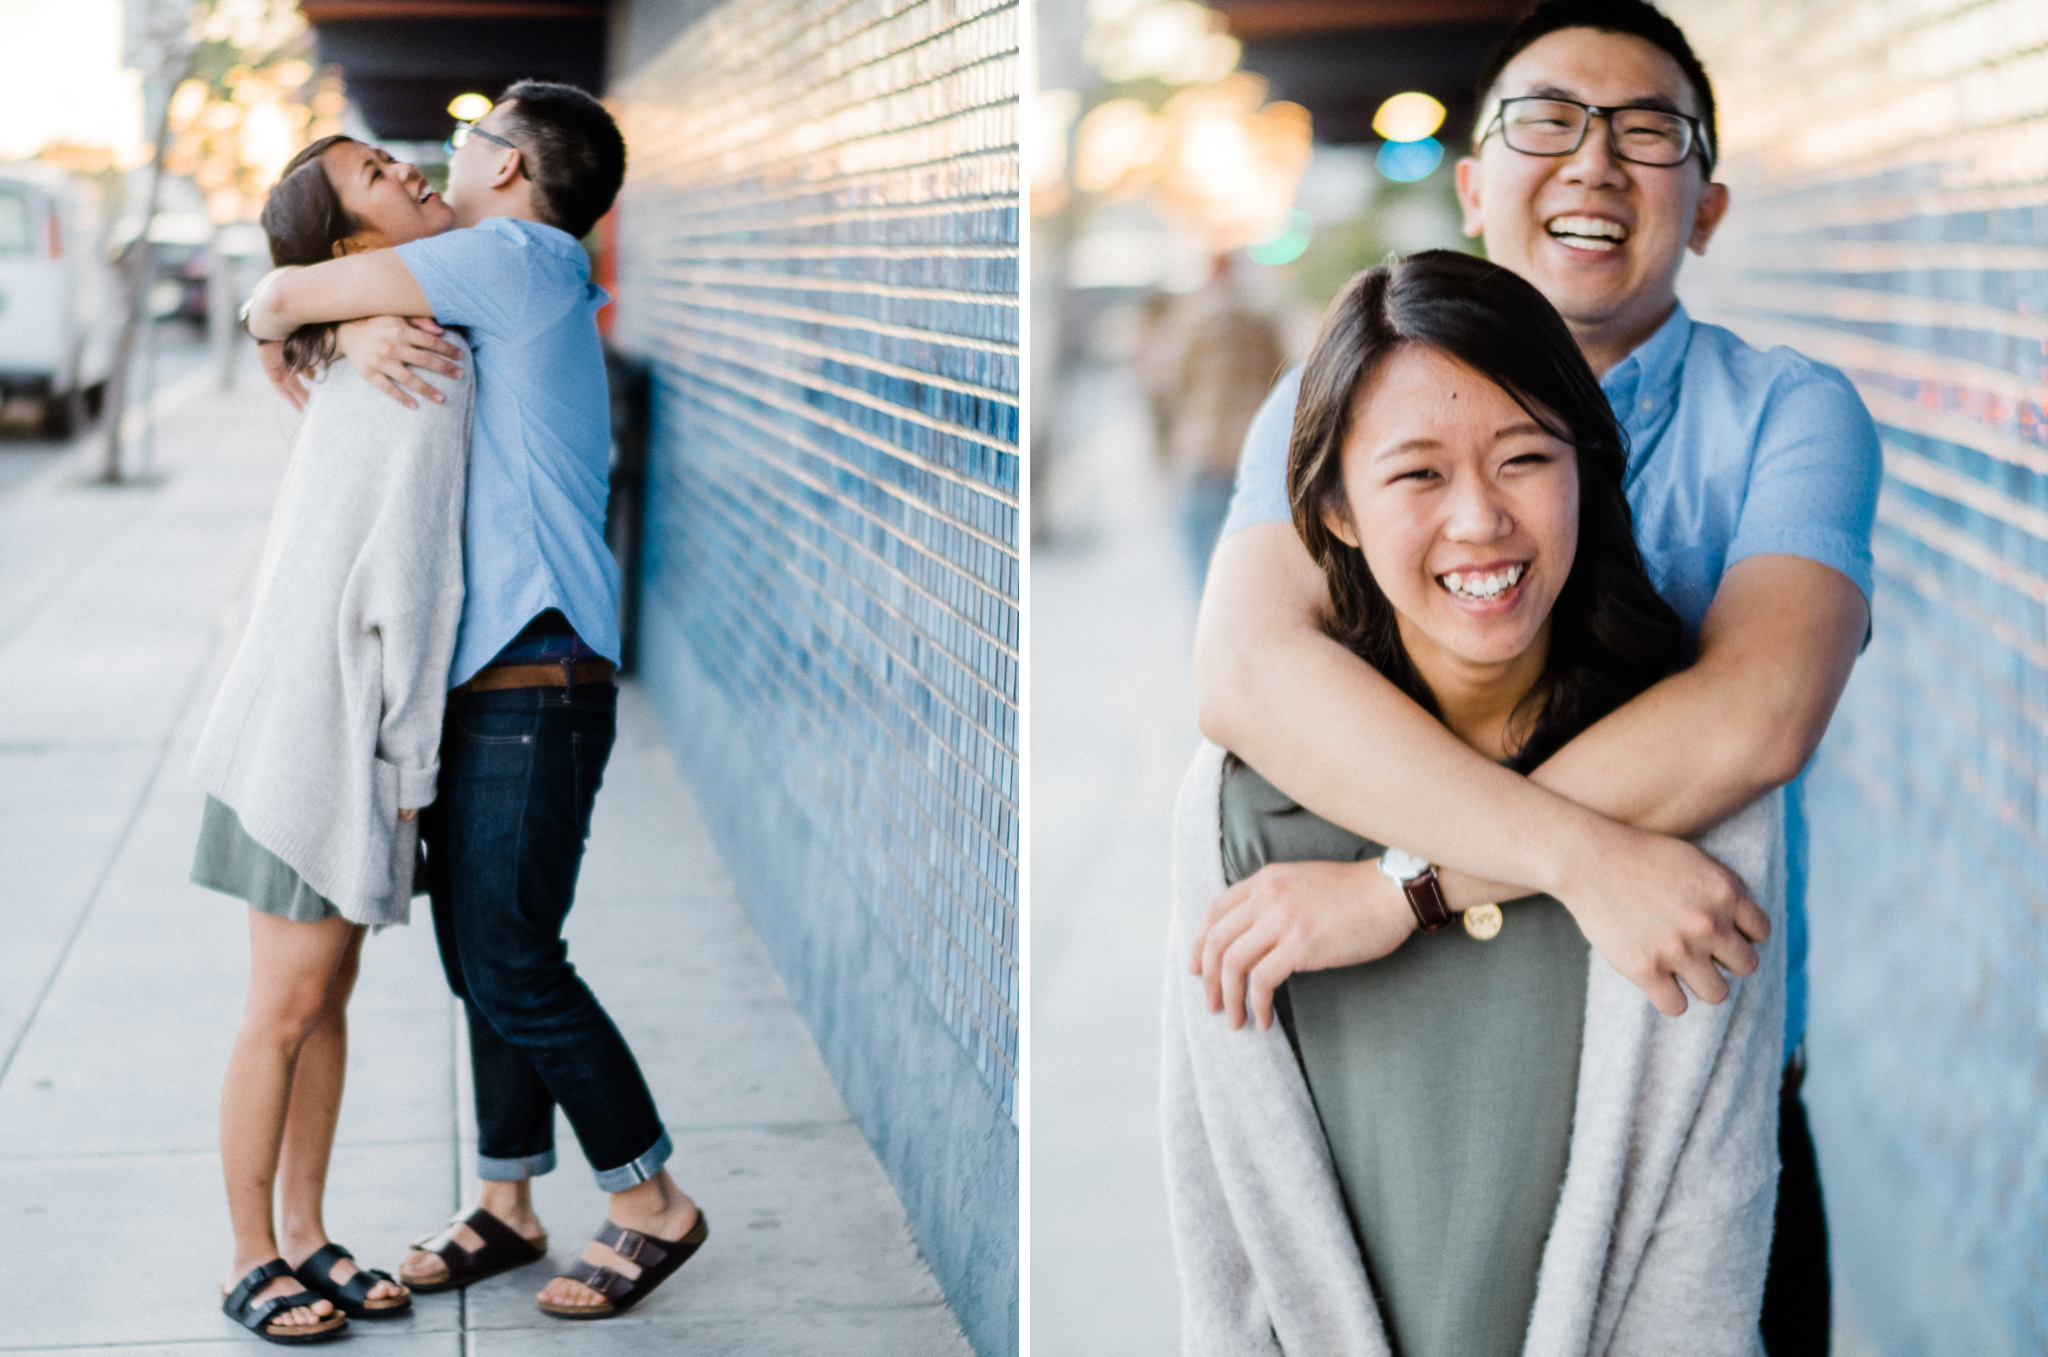 josh and sandra diptych vertical hugging wall.jpg